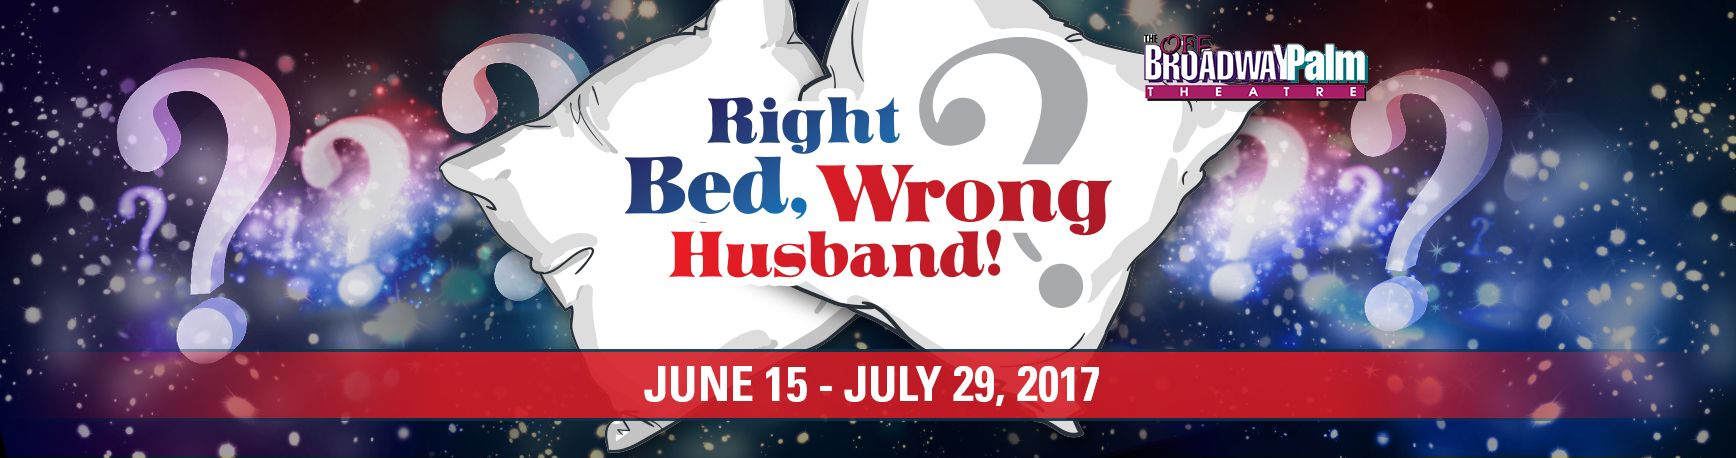 James Putnam is lying Ted in Off Broadway Palm's 'Right Bed, Wrong Husband'